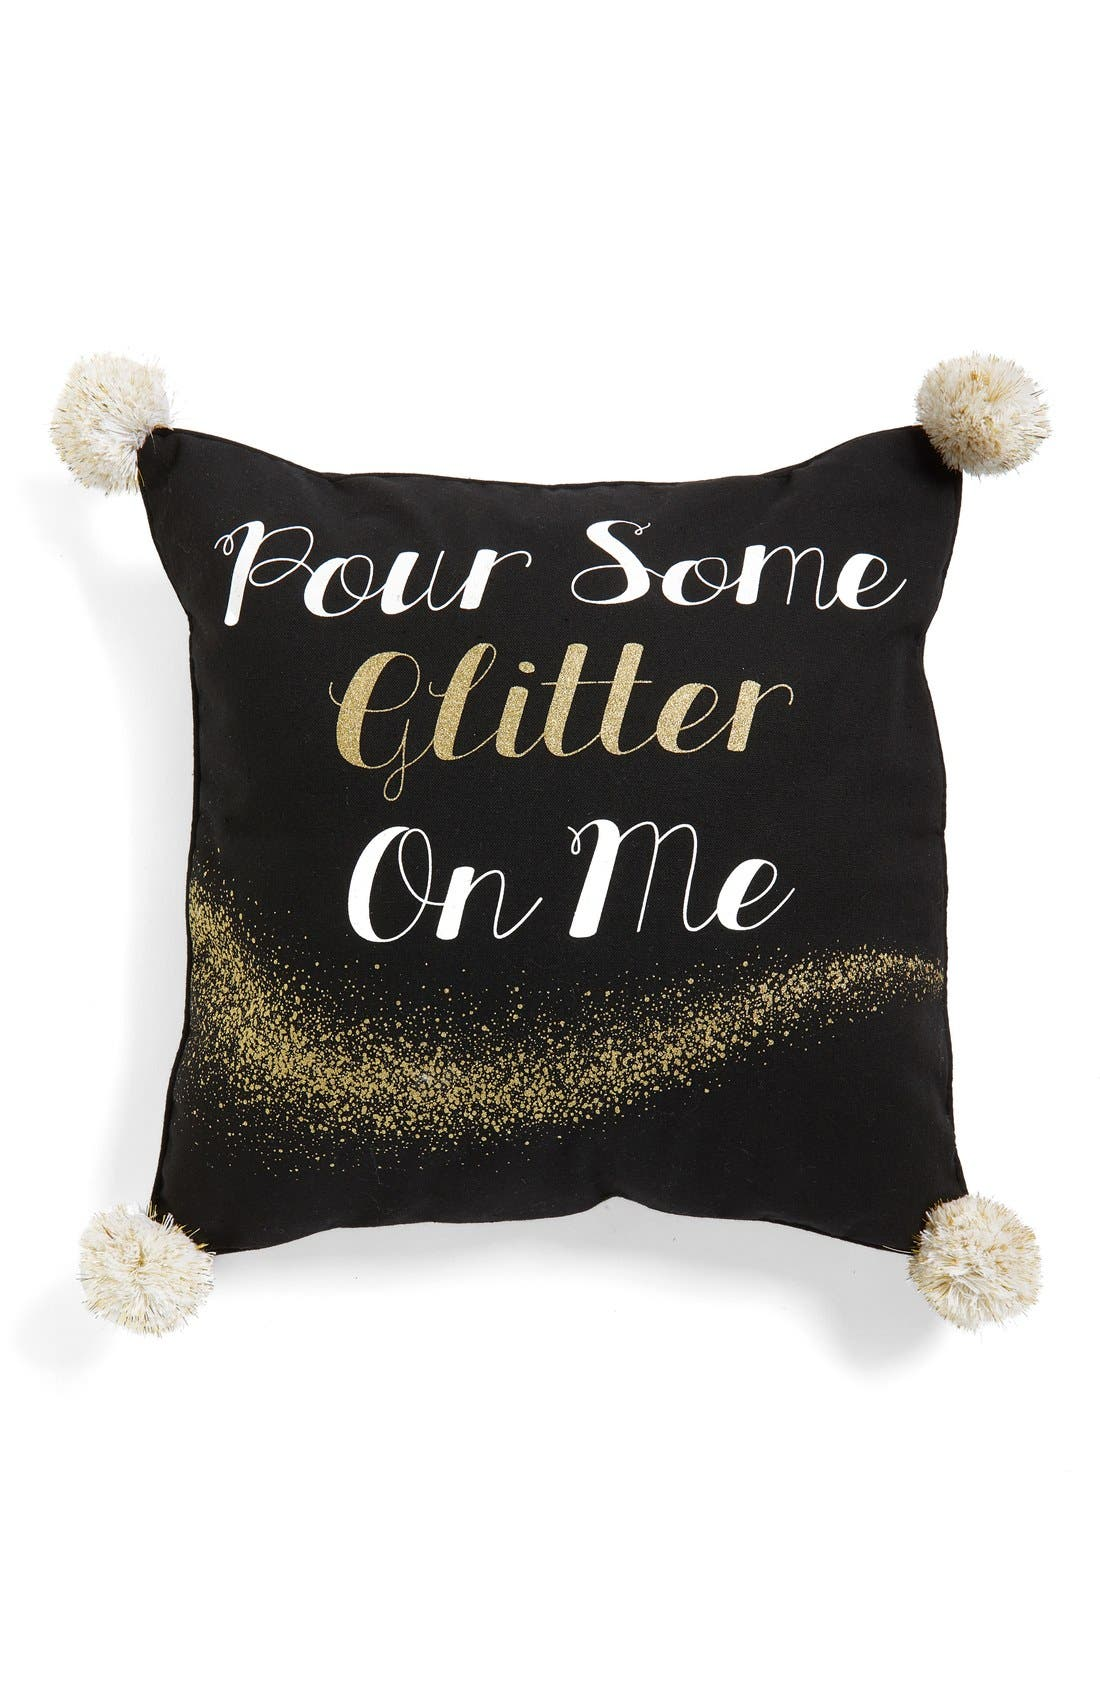 Alternate Image 1 Selected - Levtex 'Pour Some Glitter On Me' Accent Pillow